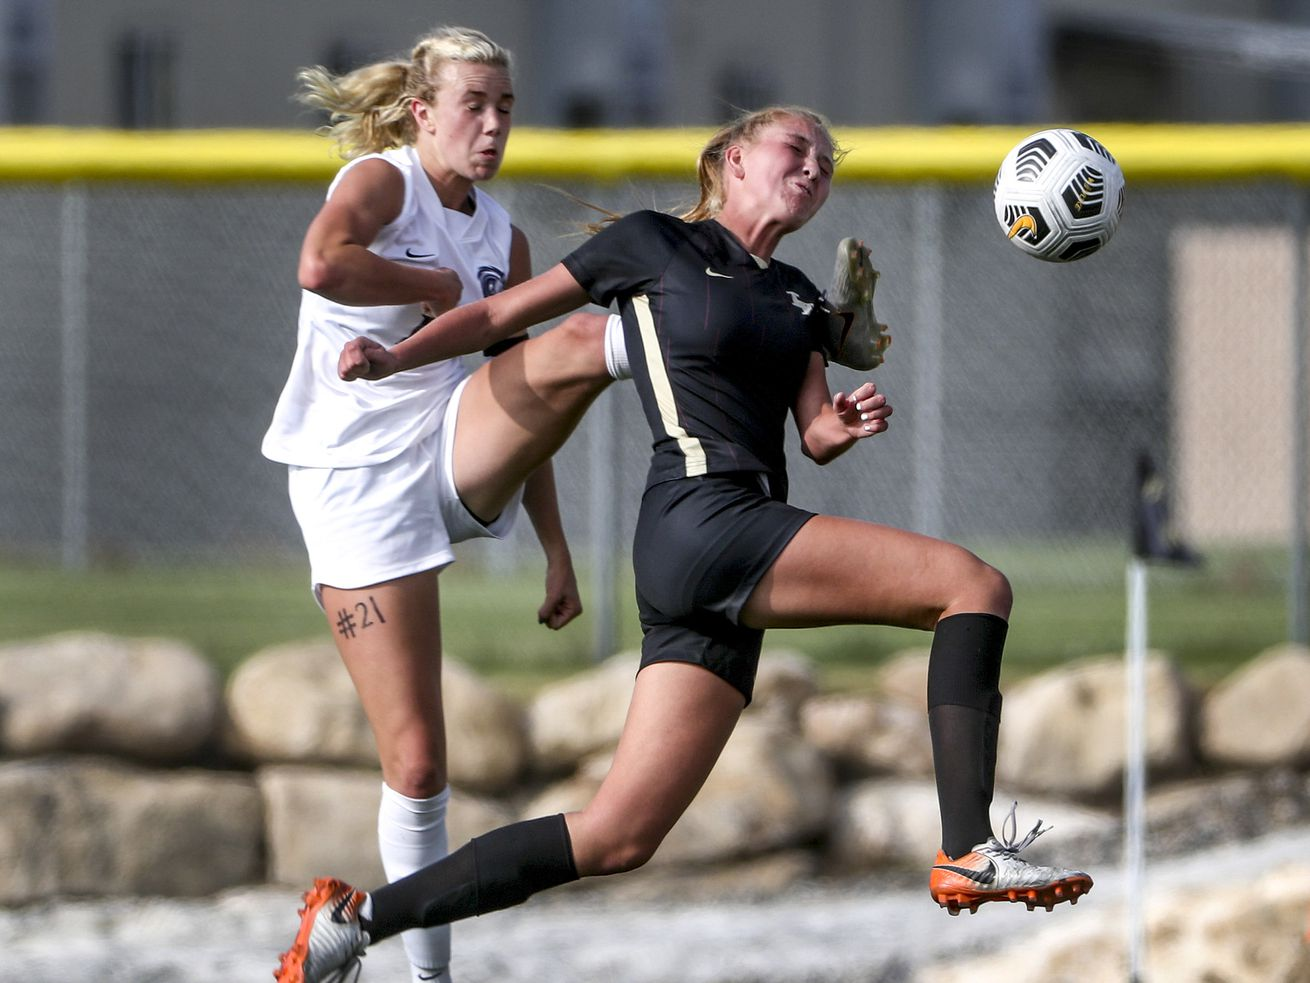 Corner Canyon's Reagan Winget, left, kicks the ball away from Lone Peak's Ellie Tadje during a girls soccer game at Lone Peak High School in Alpine on Tuesday, Sept. 15, 2020.